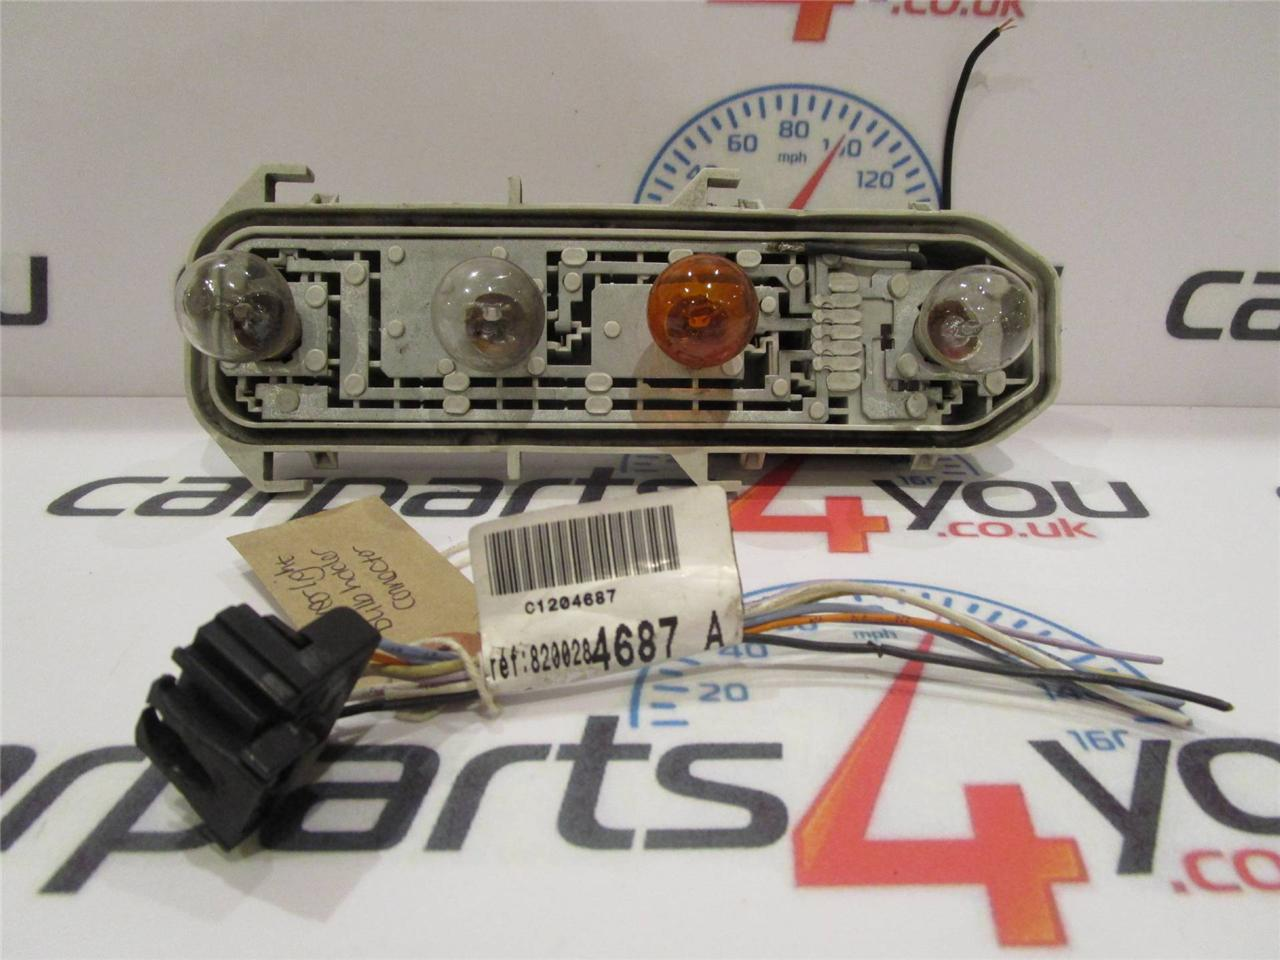 Renault Clio Rear Light Cluster Wiring Diagram : Renault clio mk ii rear tail light bulb holder